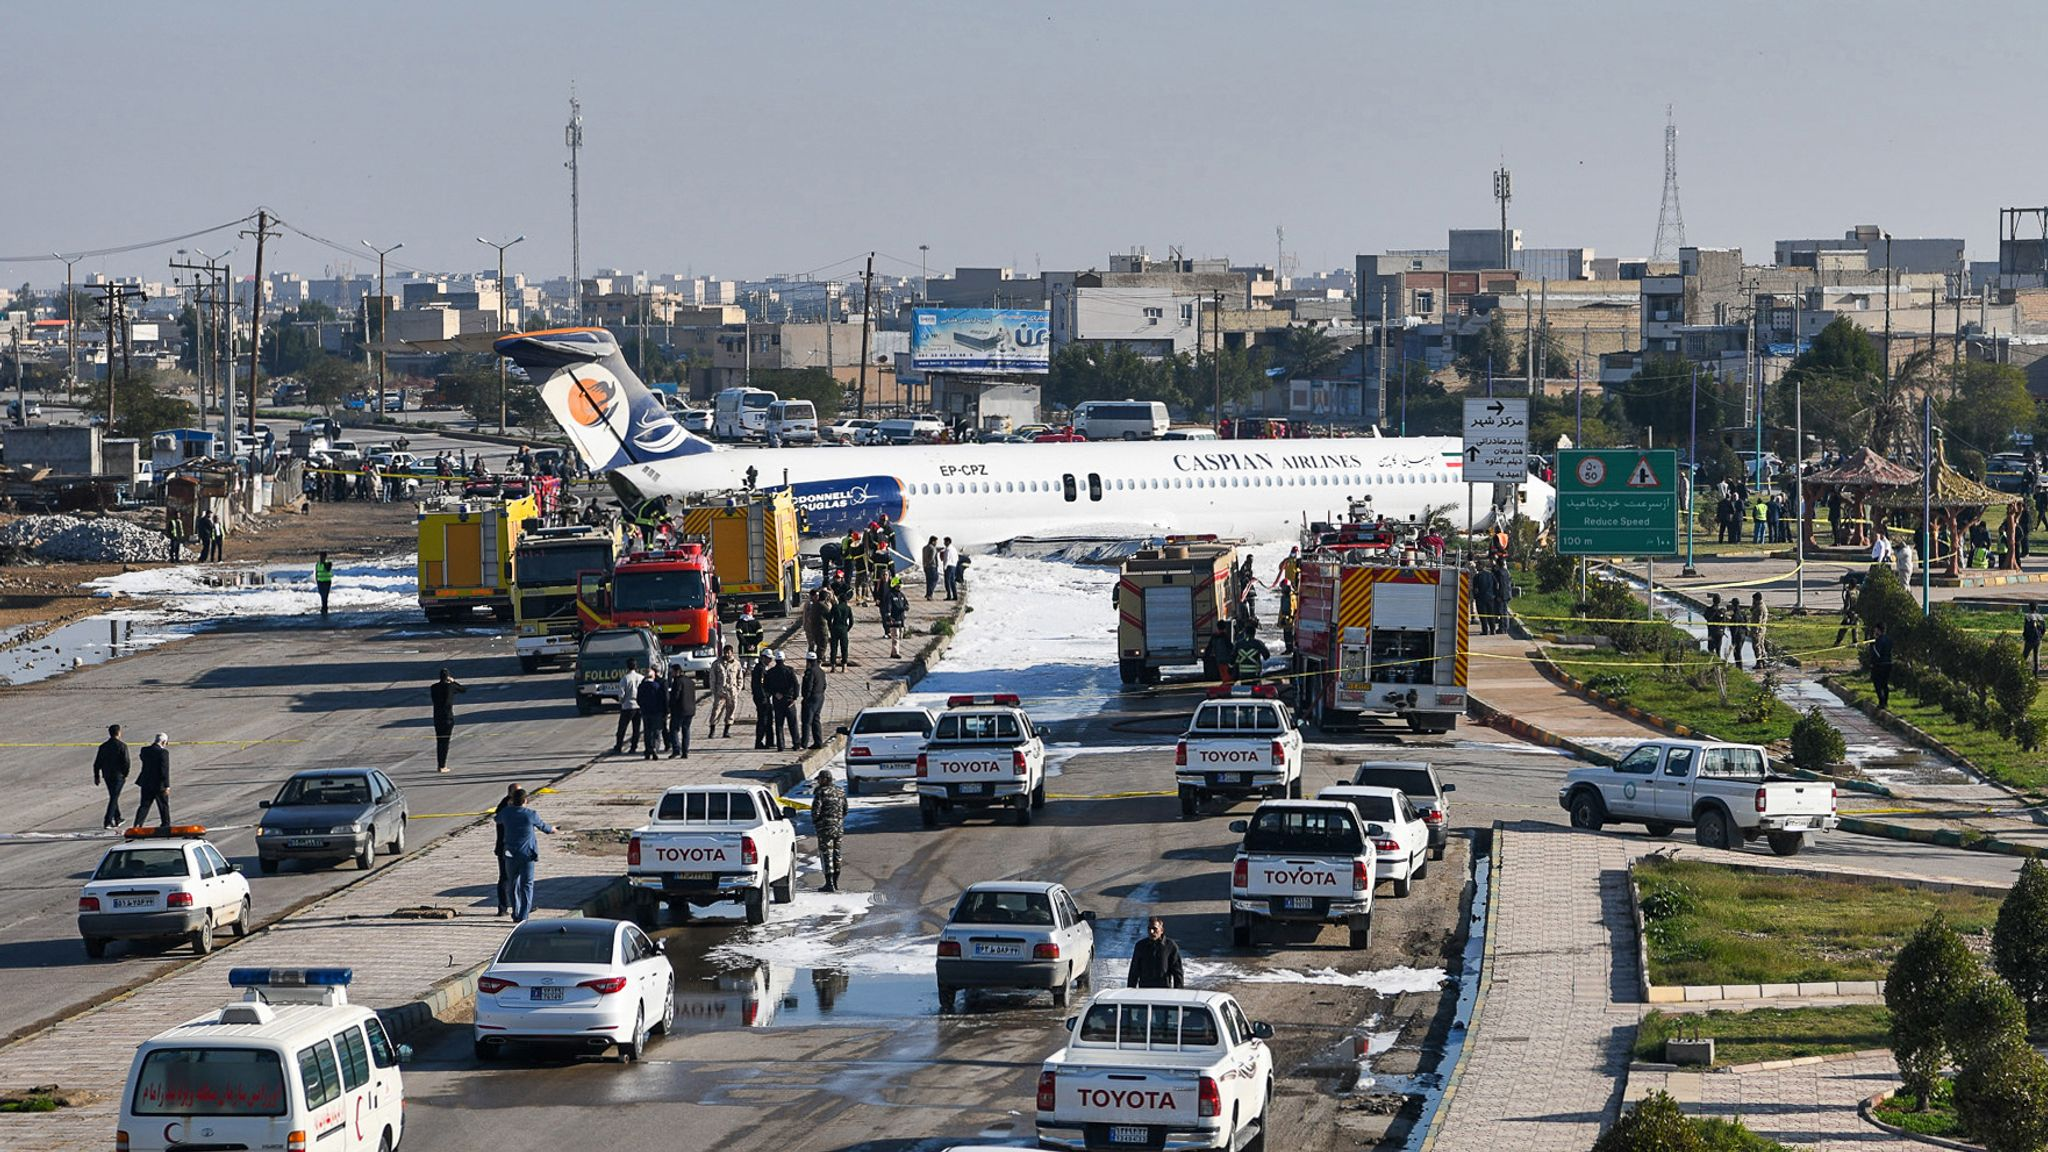 Passenger plane skids off runway onto nearby street in Iran